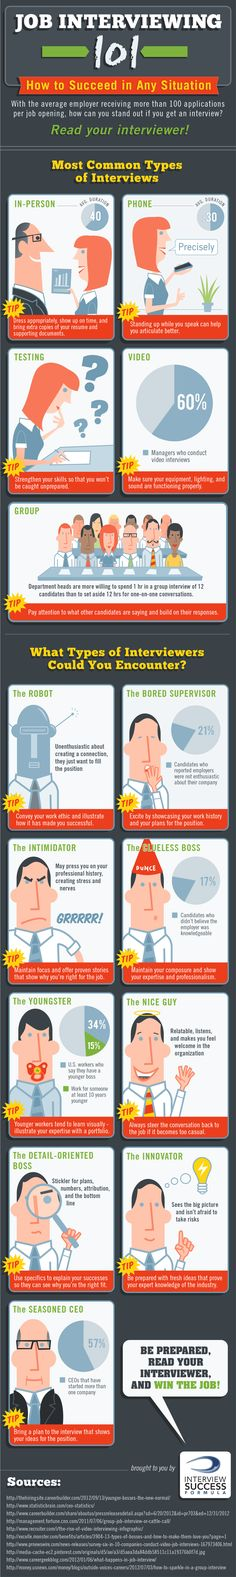 Job Interviewing Infographic, How to Succeed in Different Situations.